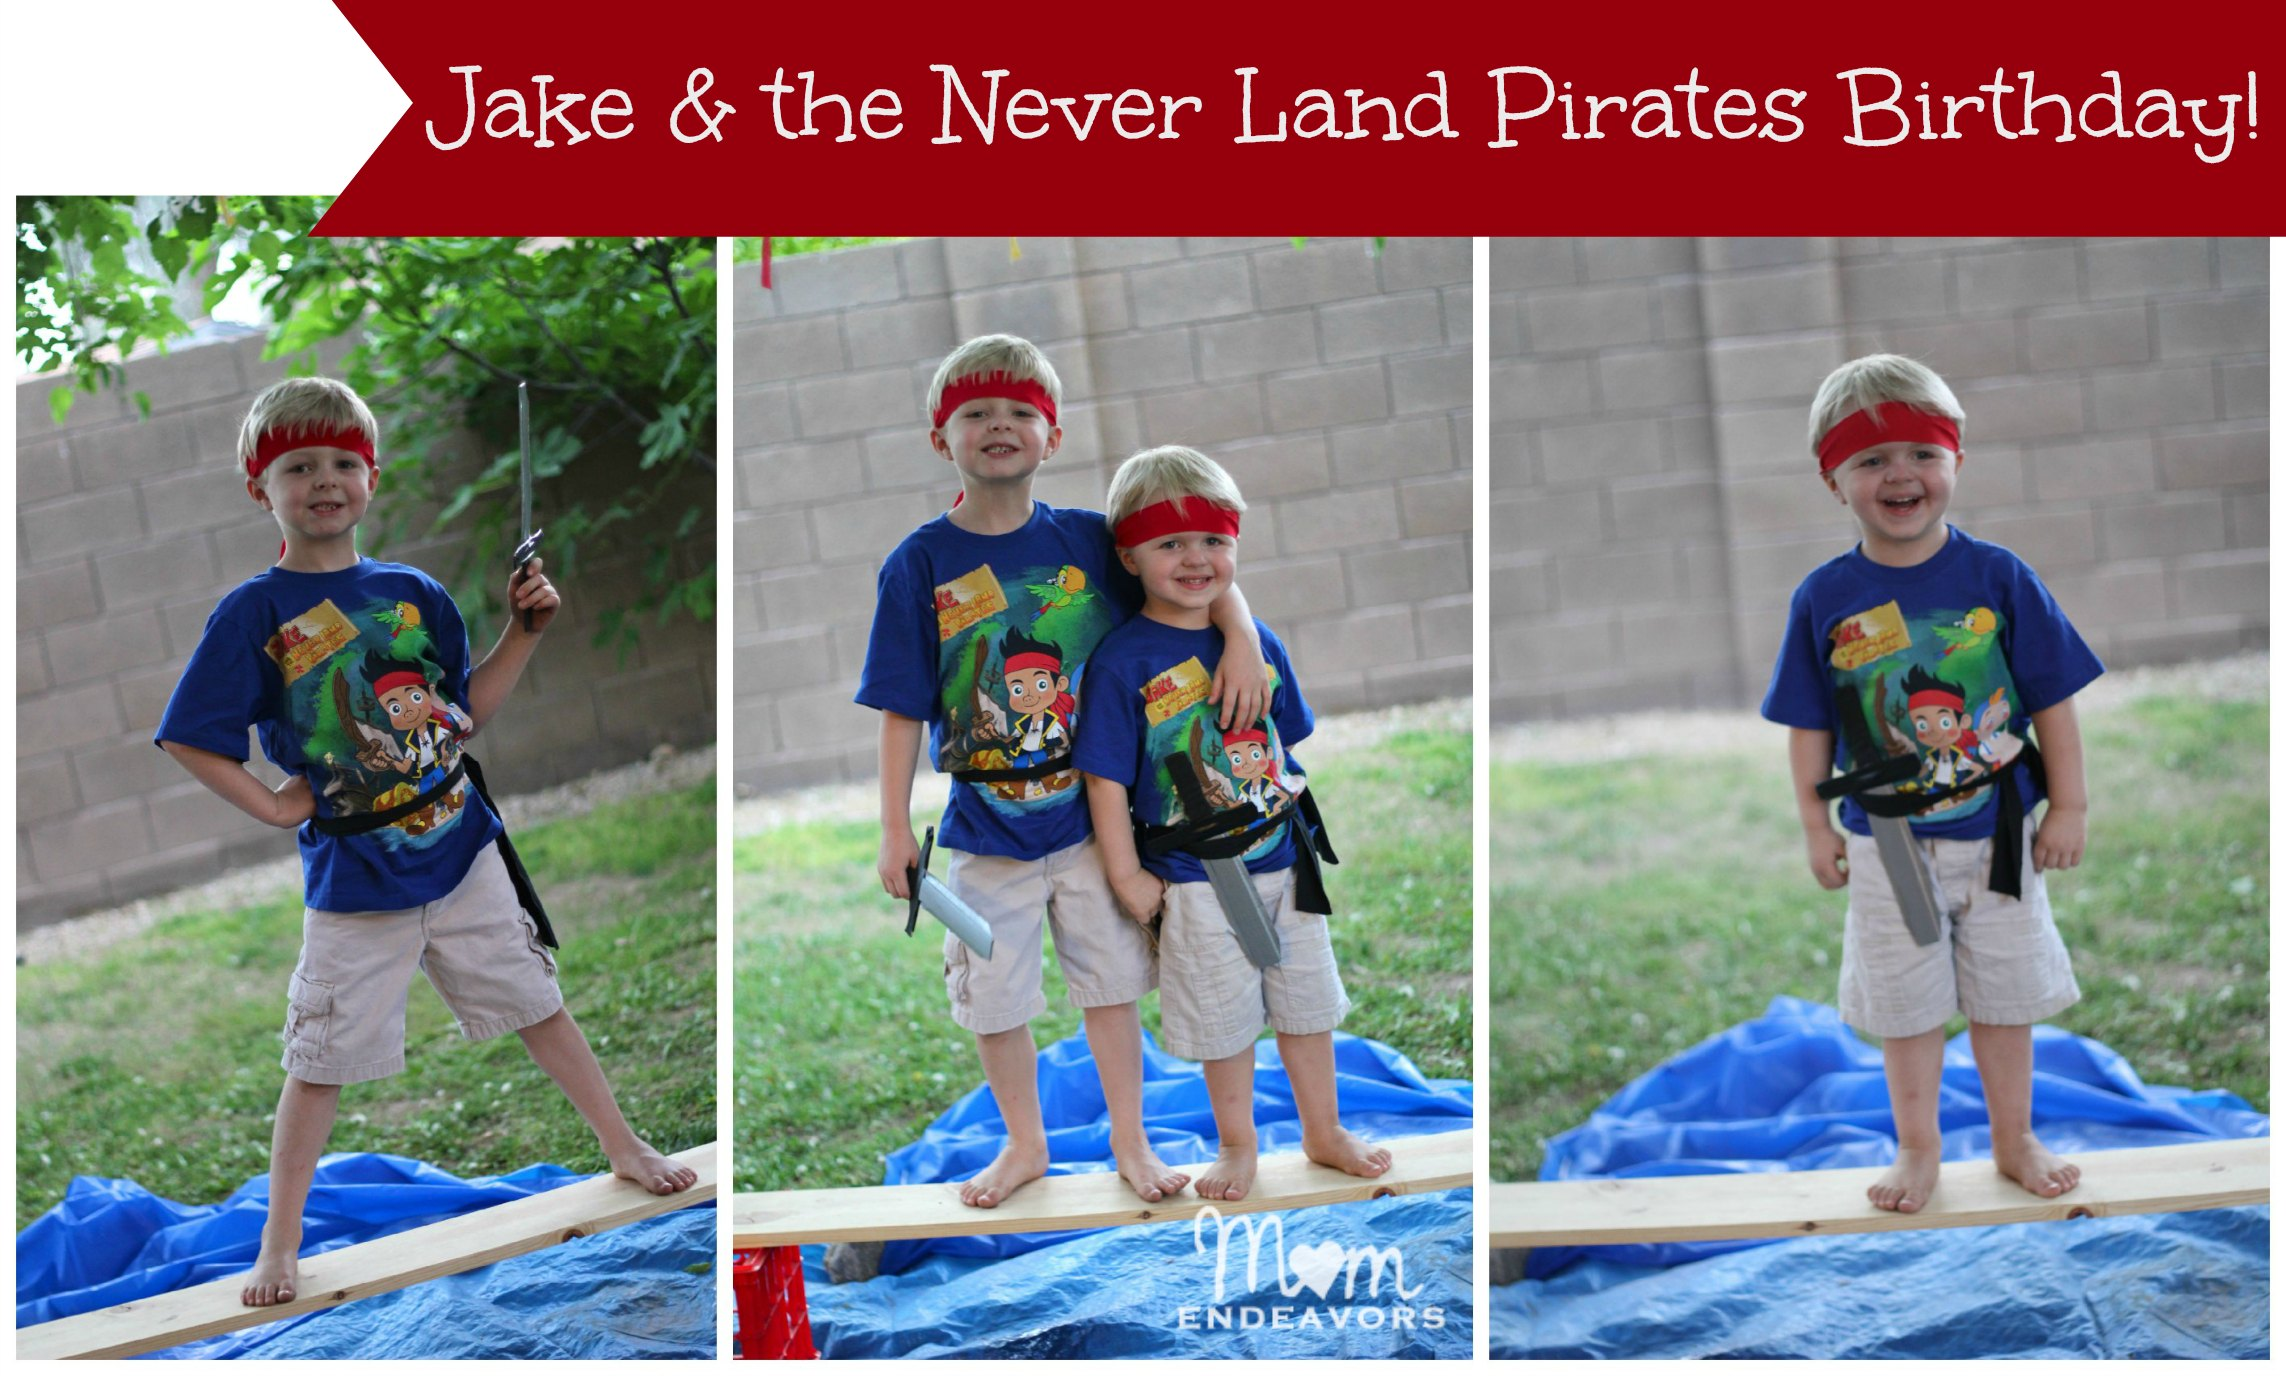 Jake and the Never Land Pirates Birthday Party!